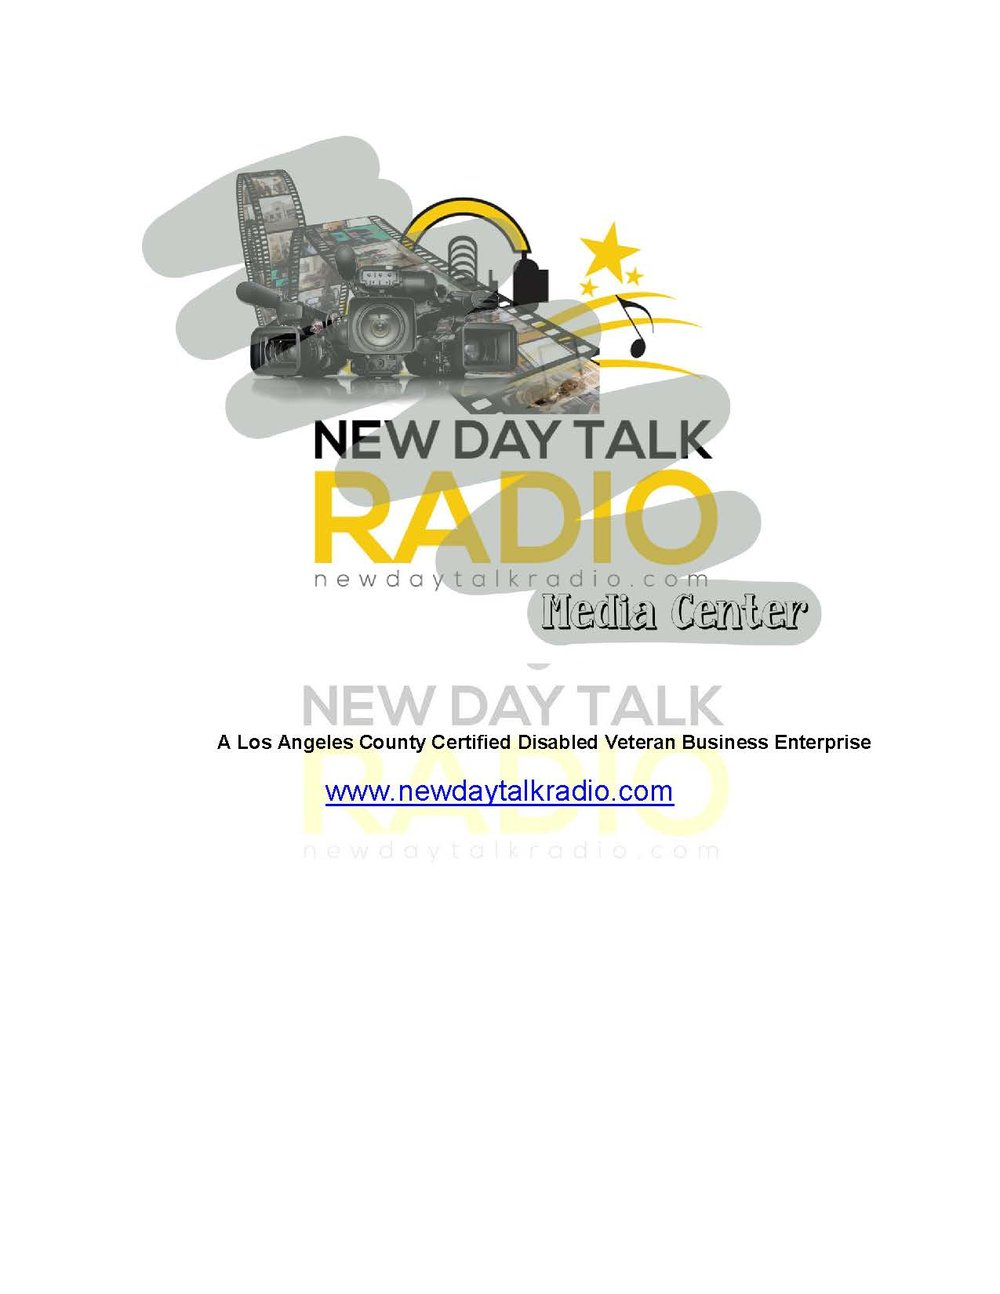 New Day Talk Radio Statement of Qualifications v3_Page_14.jpg